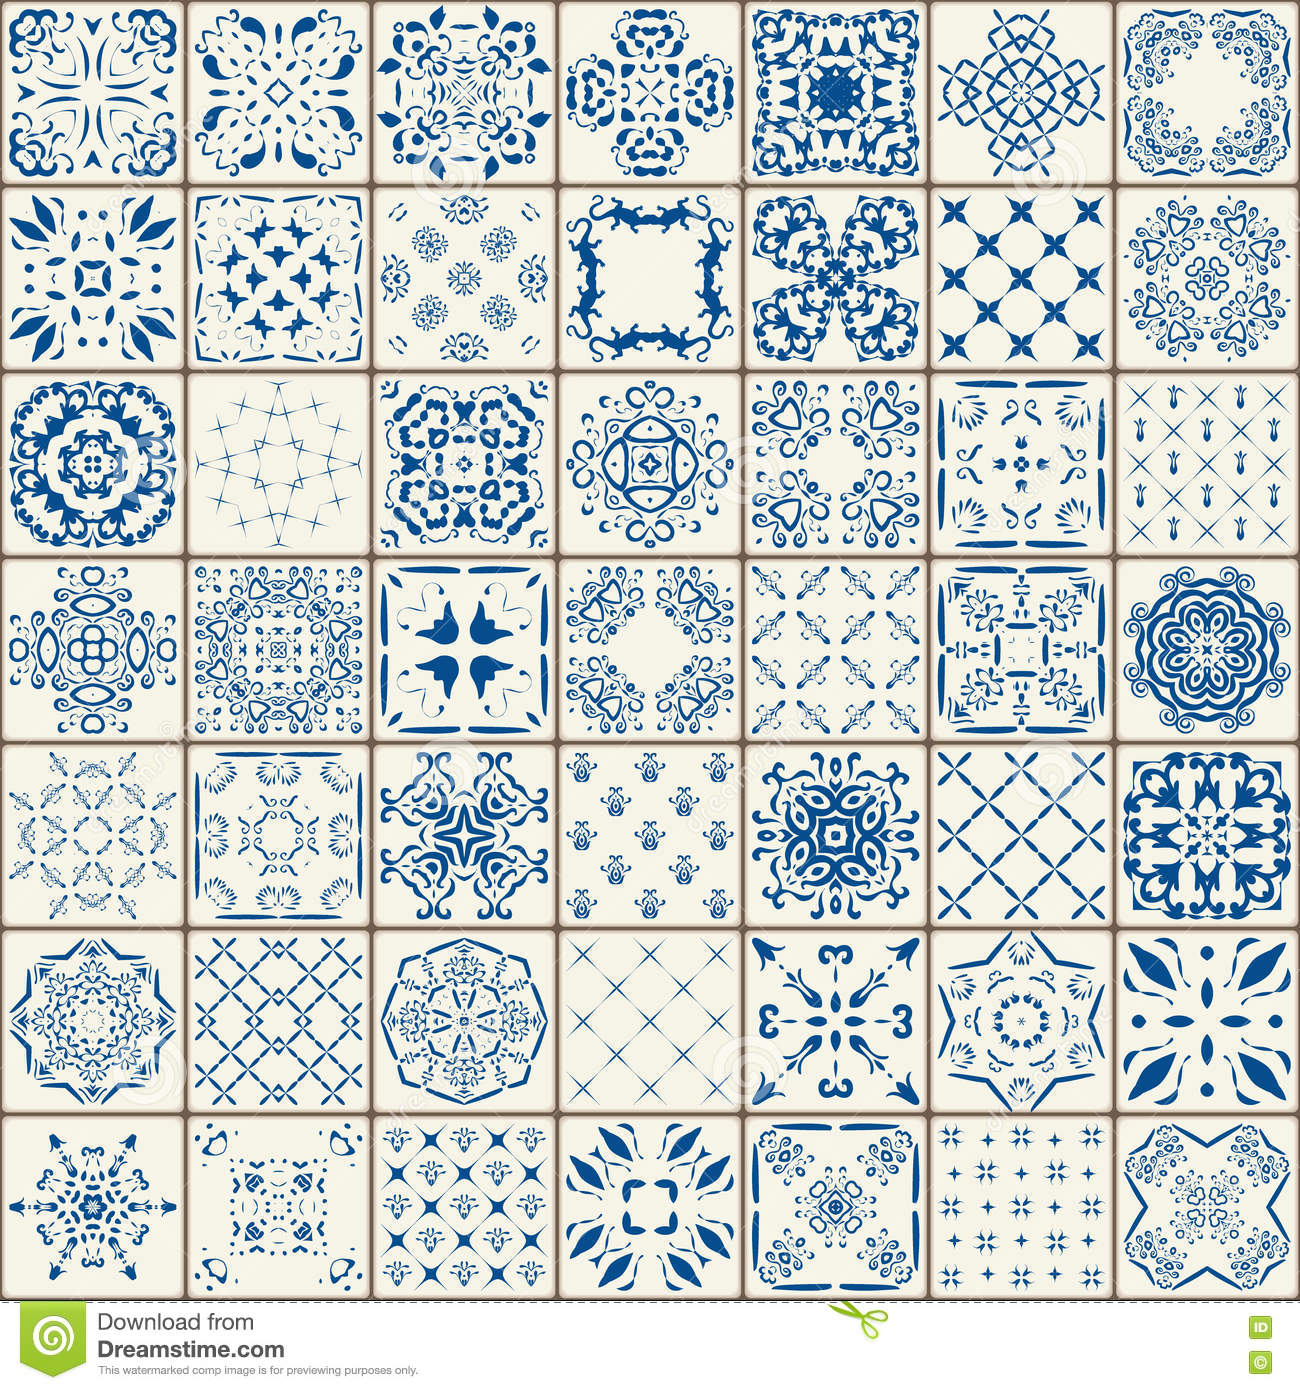 Mega Gorgeous seamless patchwork pattern from colorful Moroccan tiles, ornaments. Can be used for wallpaper, fills, web page